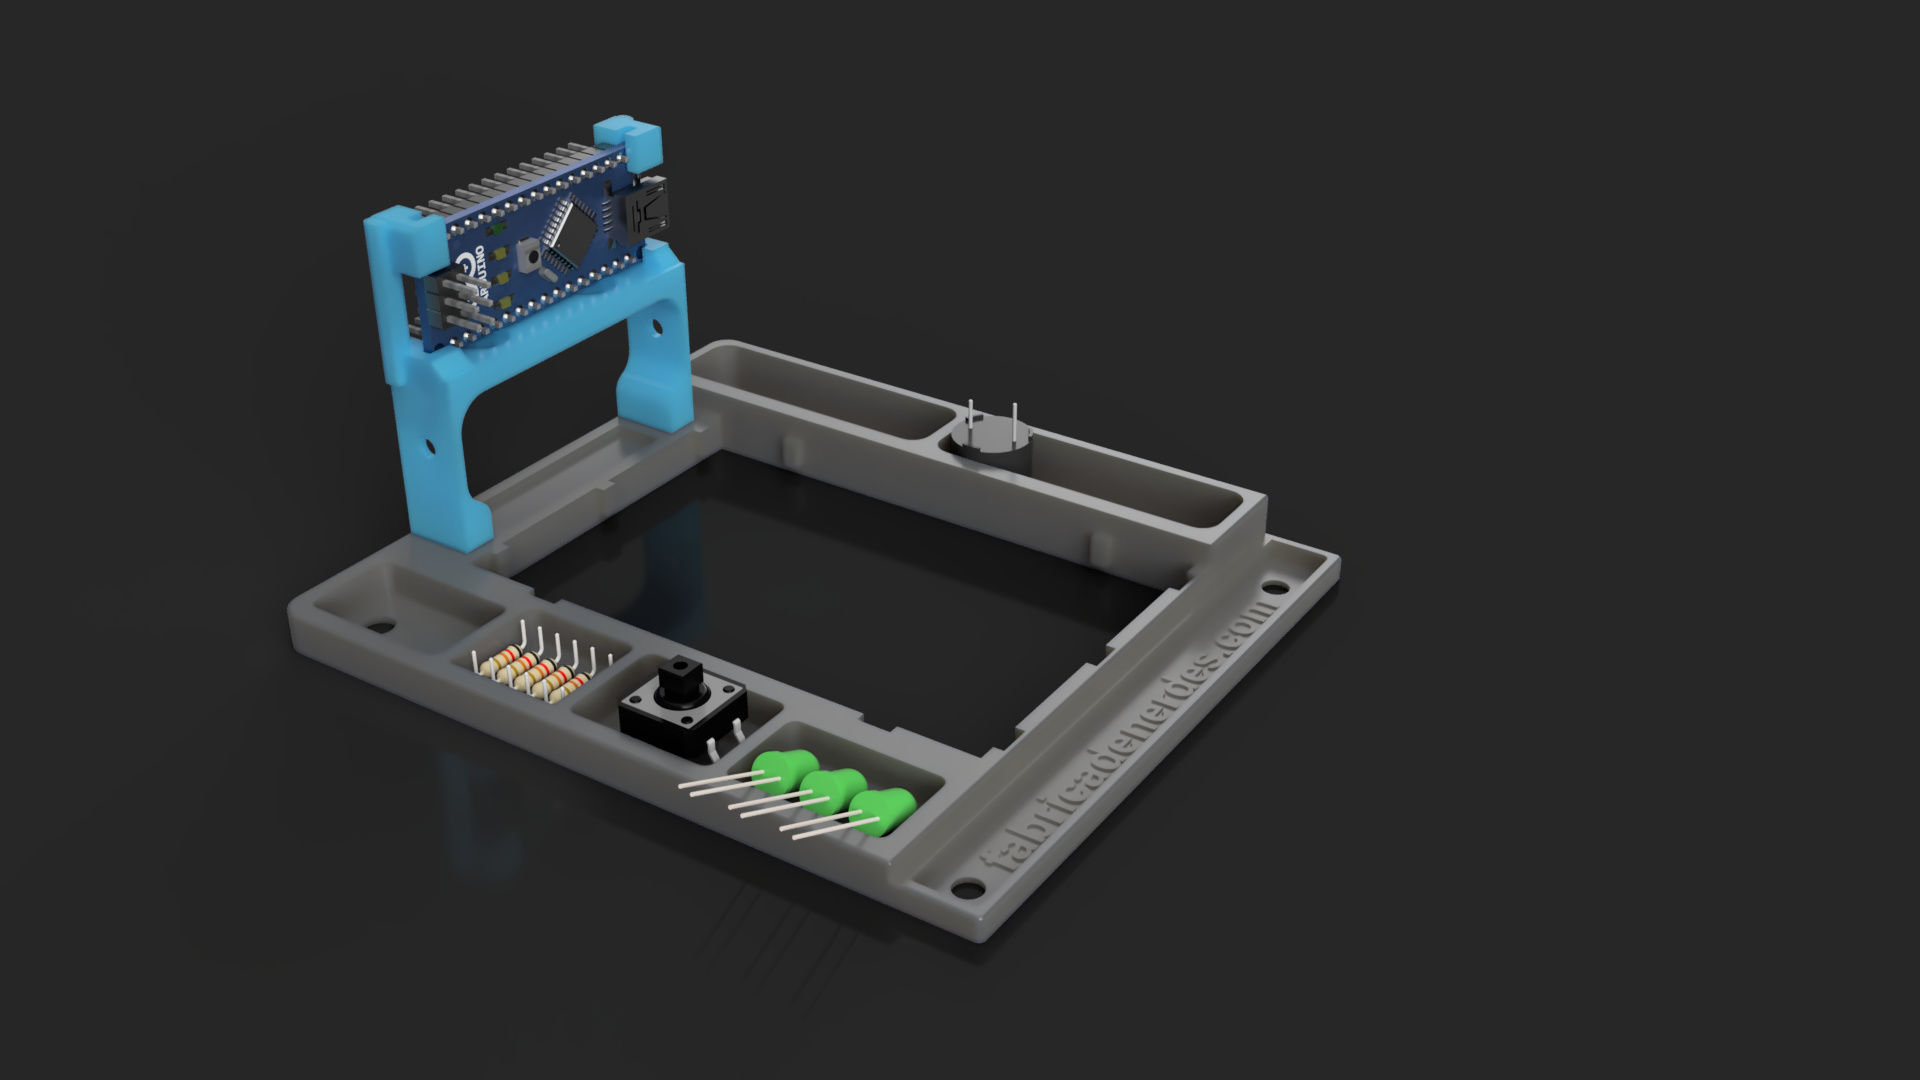 Case-arduino-nano---universal-2019-jun-28-01-48-50pm-000-customizedview15167379116-jpg-3500-3500